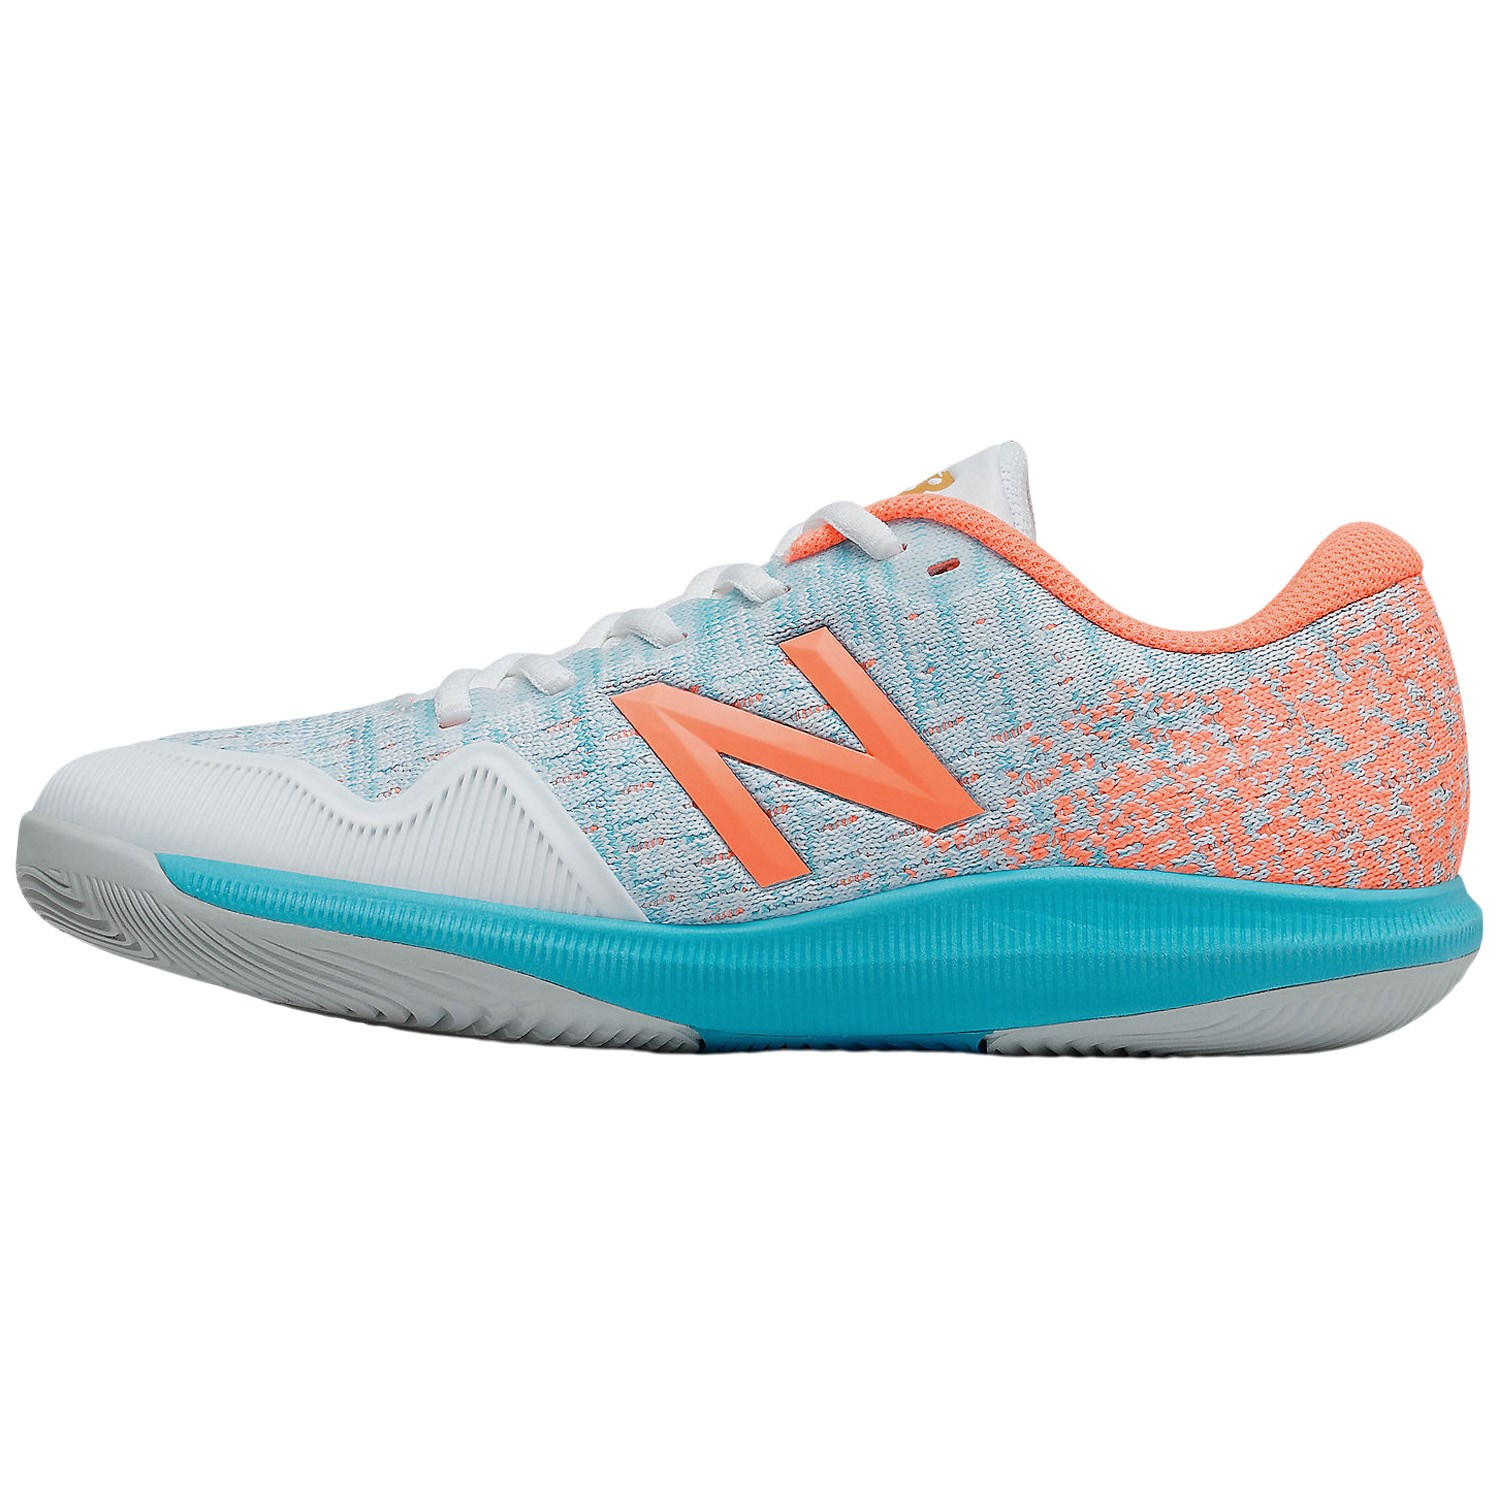 New Balance 996v4 Womens Tennis Shoes – White/Citrus